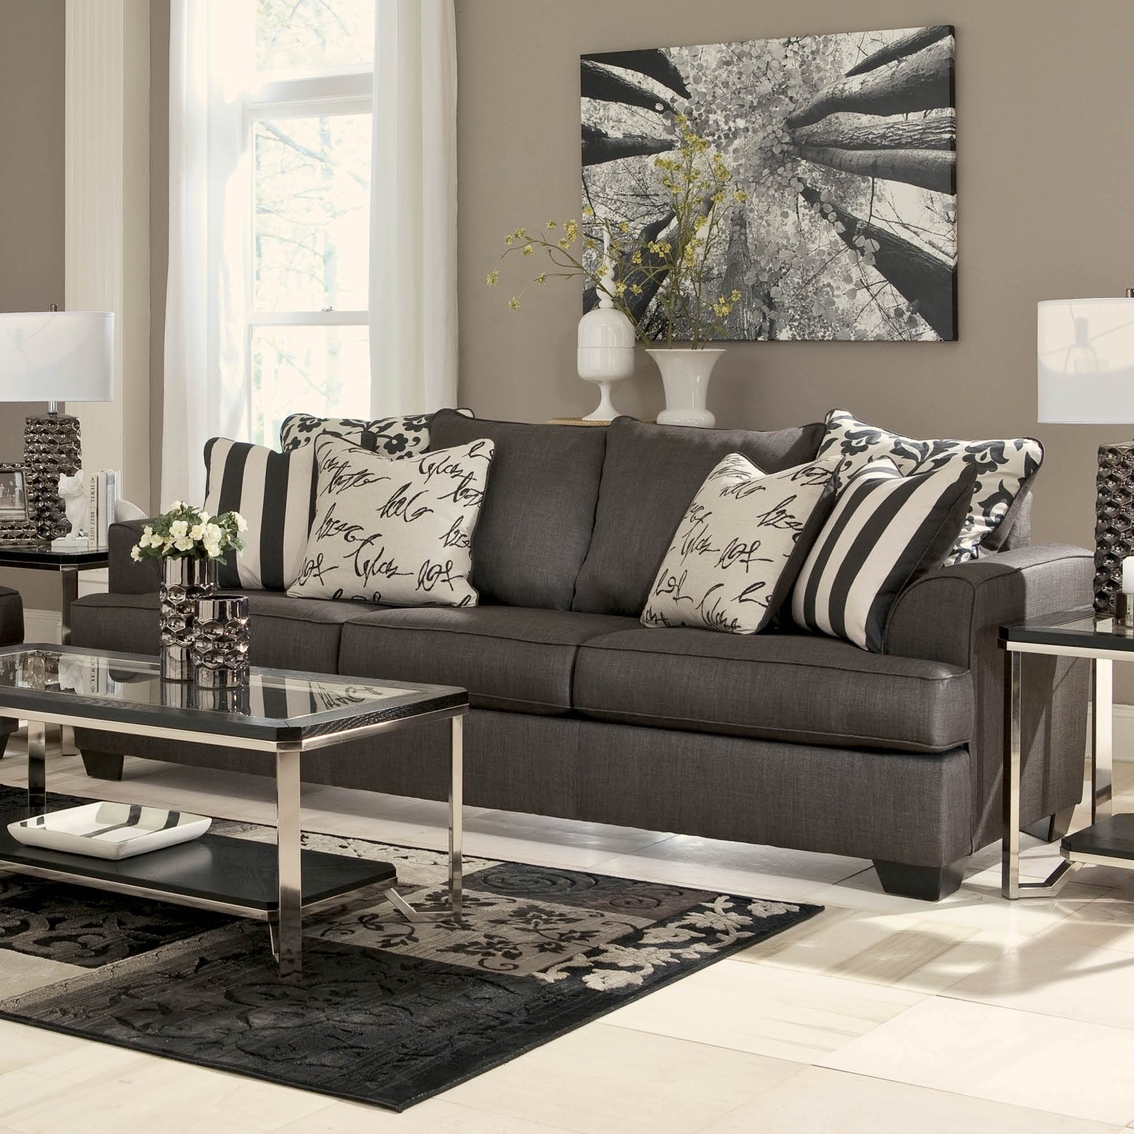 Contemporary Sofa Chairs: Signature Design By Ashley Levon Sofa, Charcoal